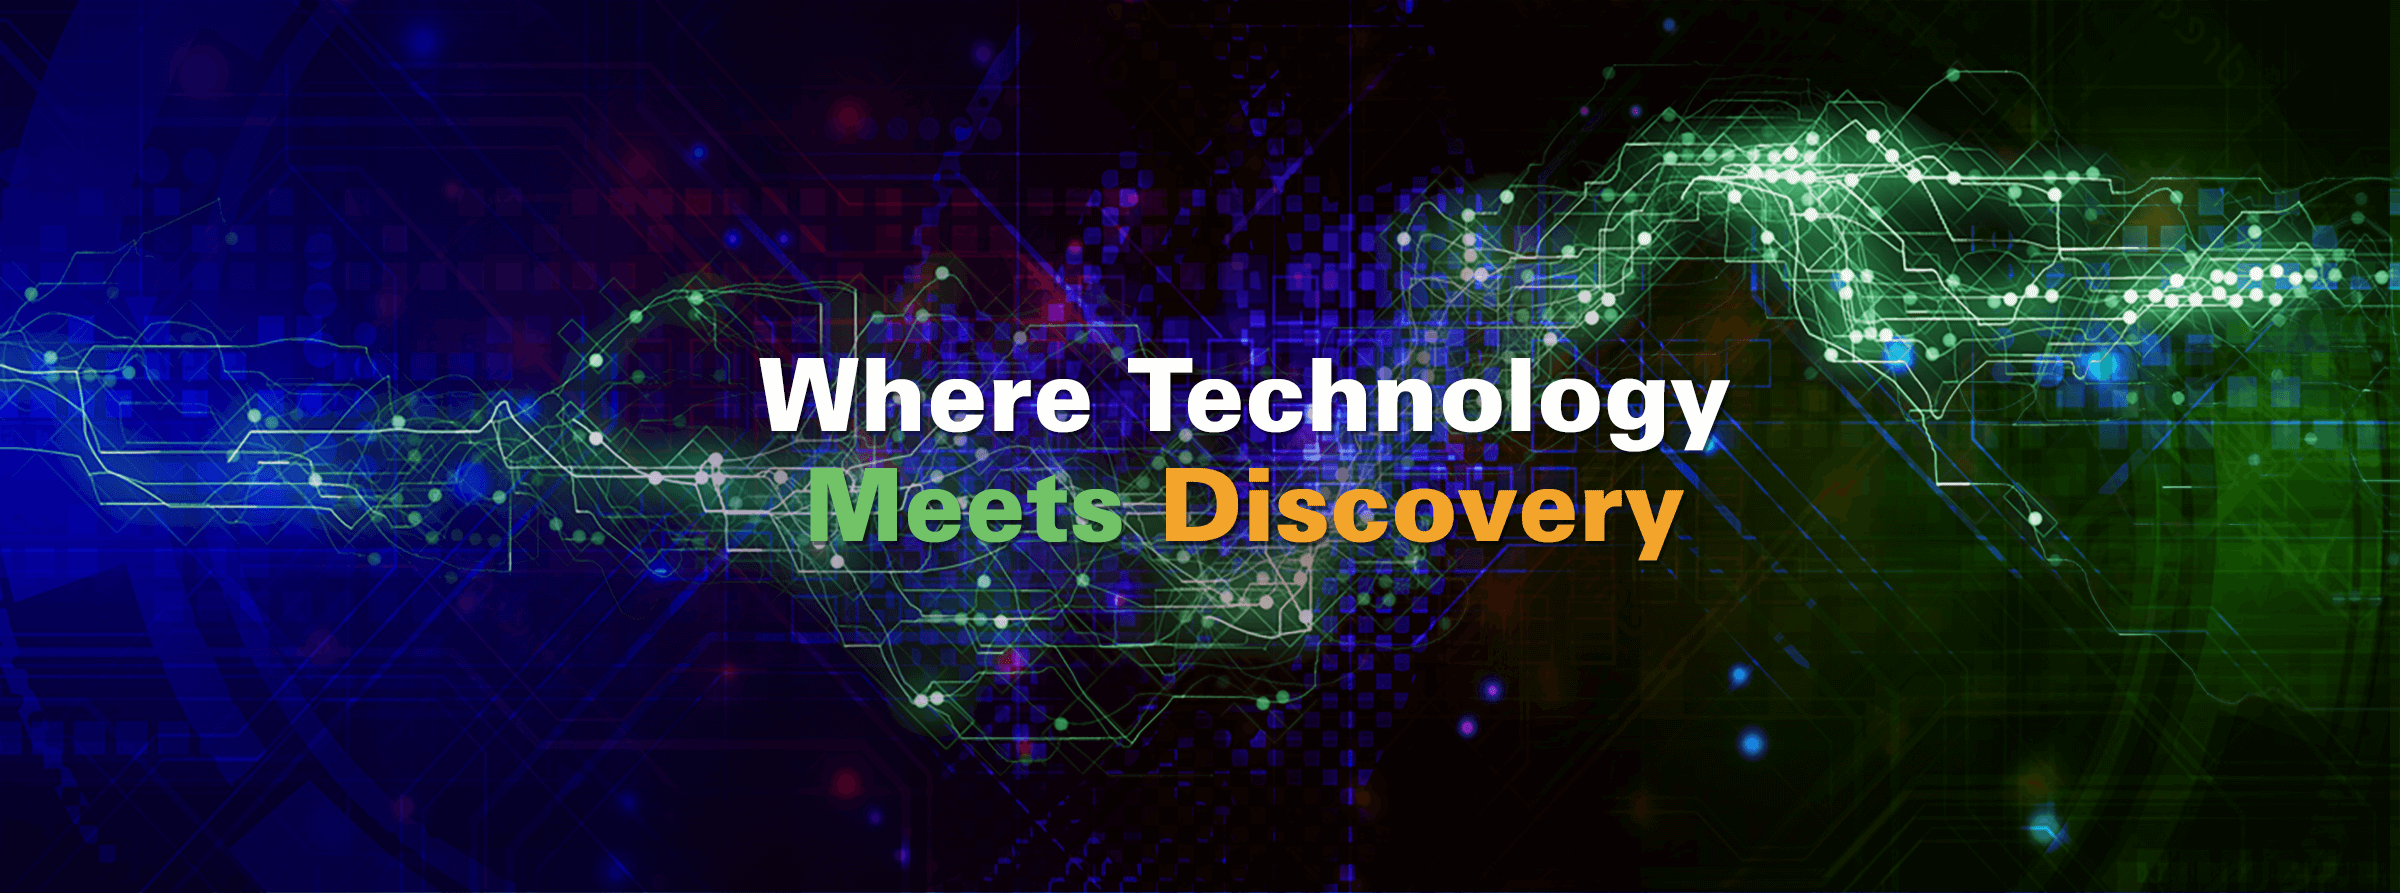 Where Technology Meets Discovery, Barrister Digital